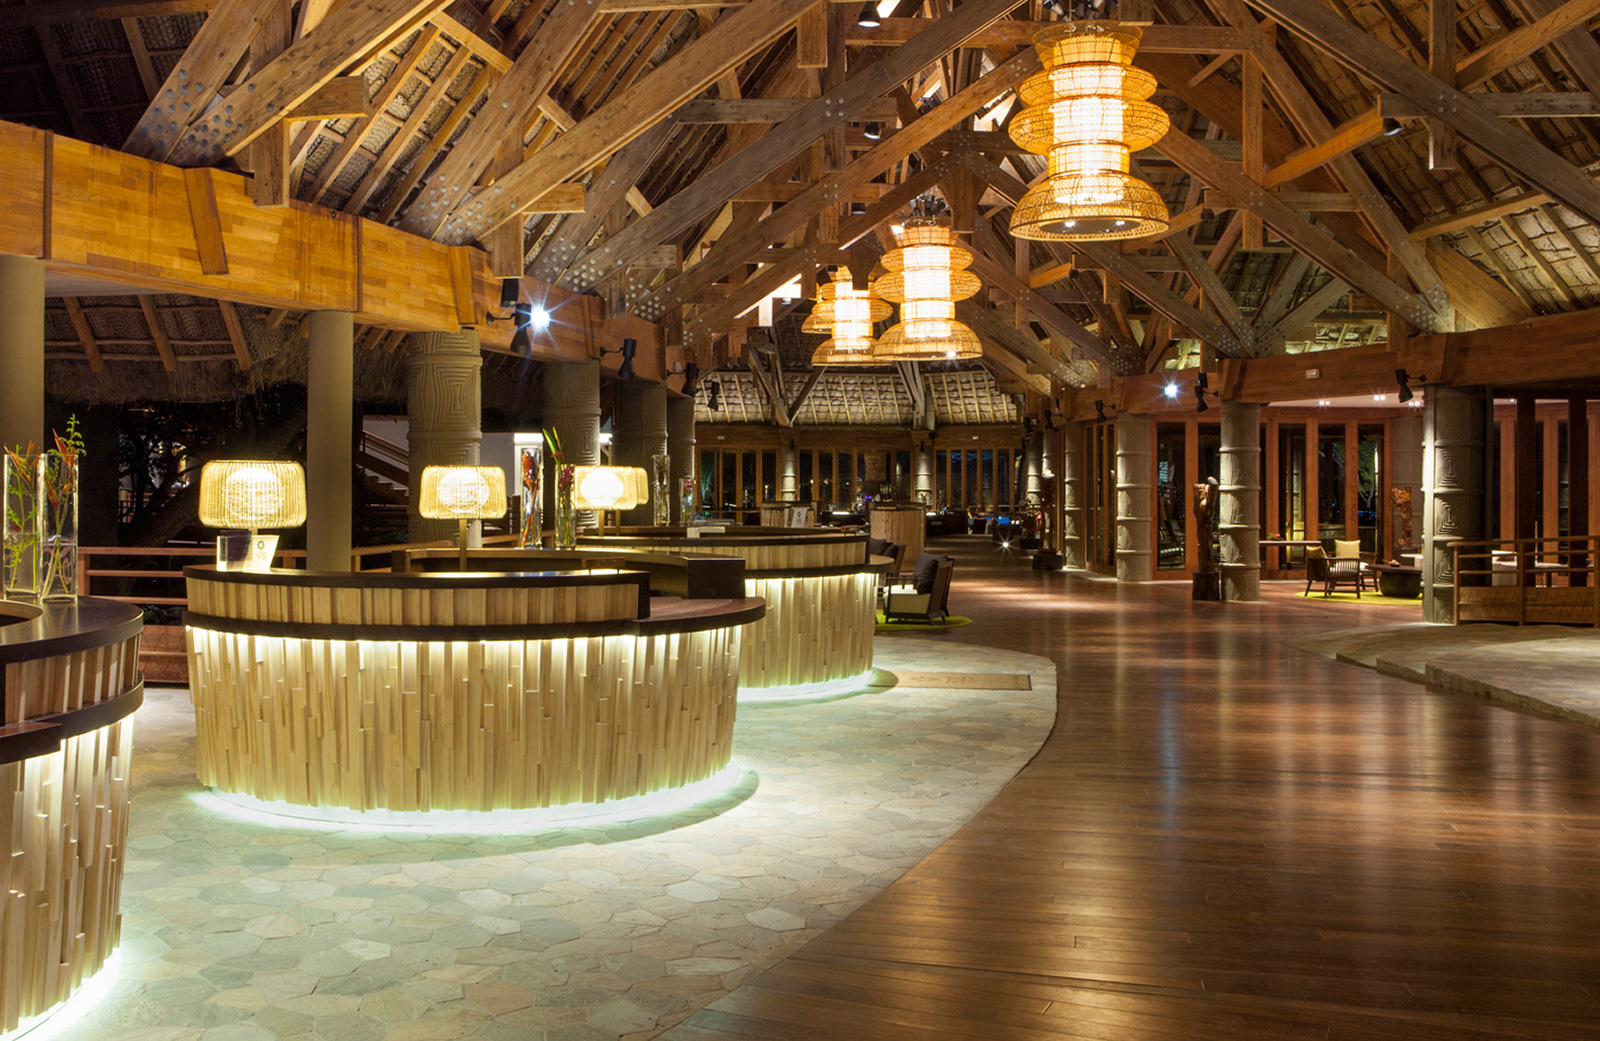 The cane chandeliered wooden reception area of the Sheraton Deva, New Caledonia